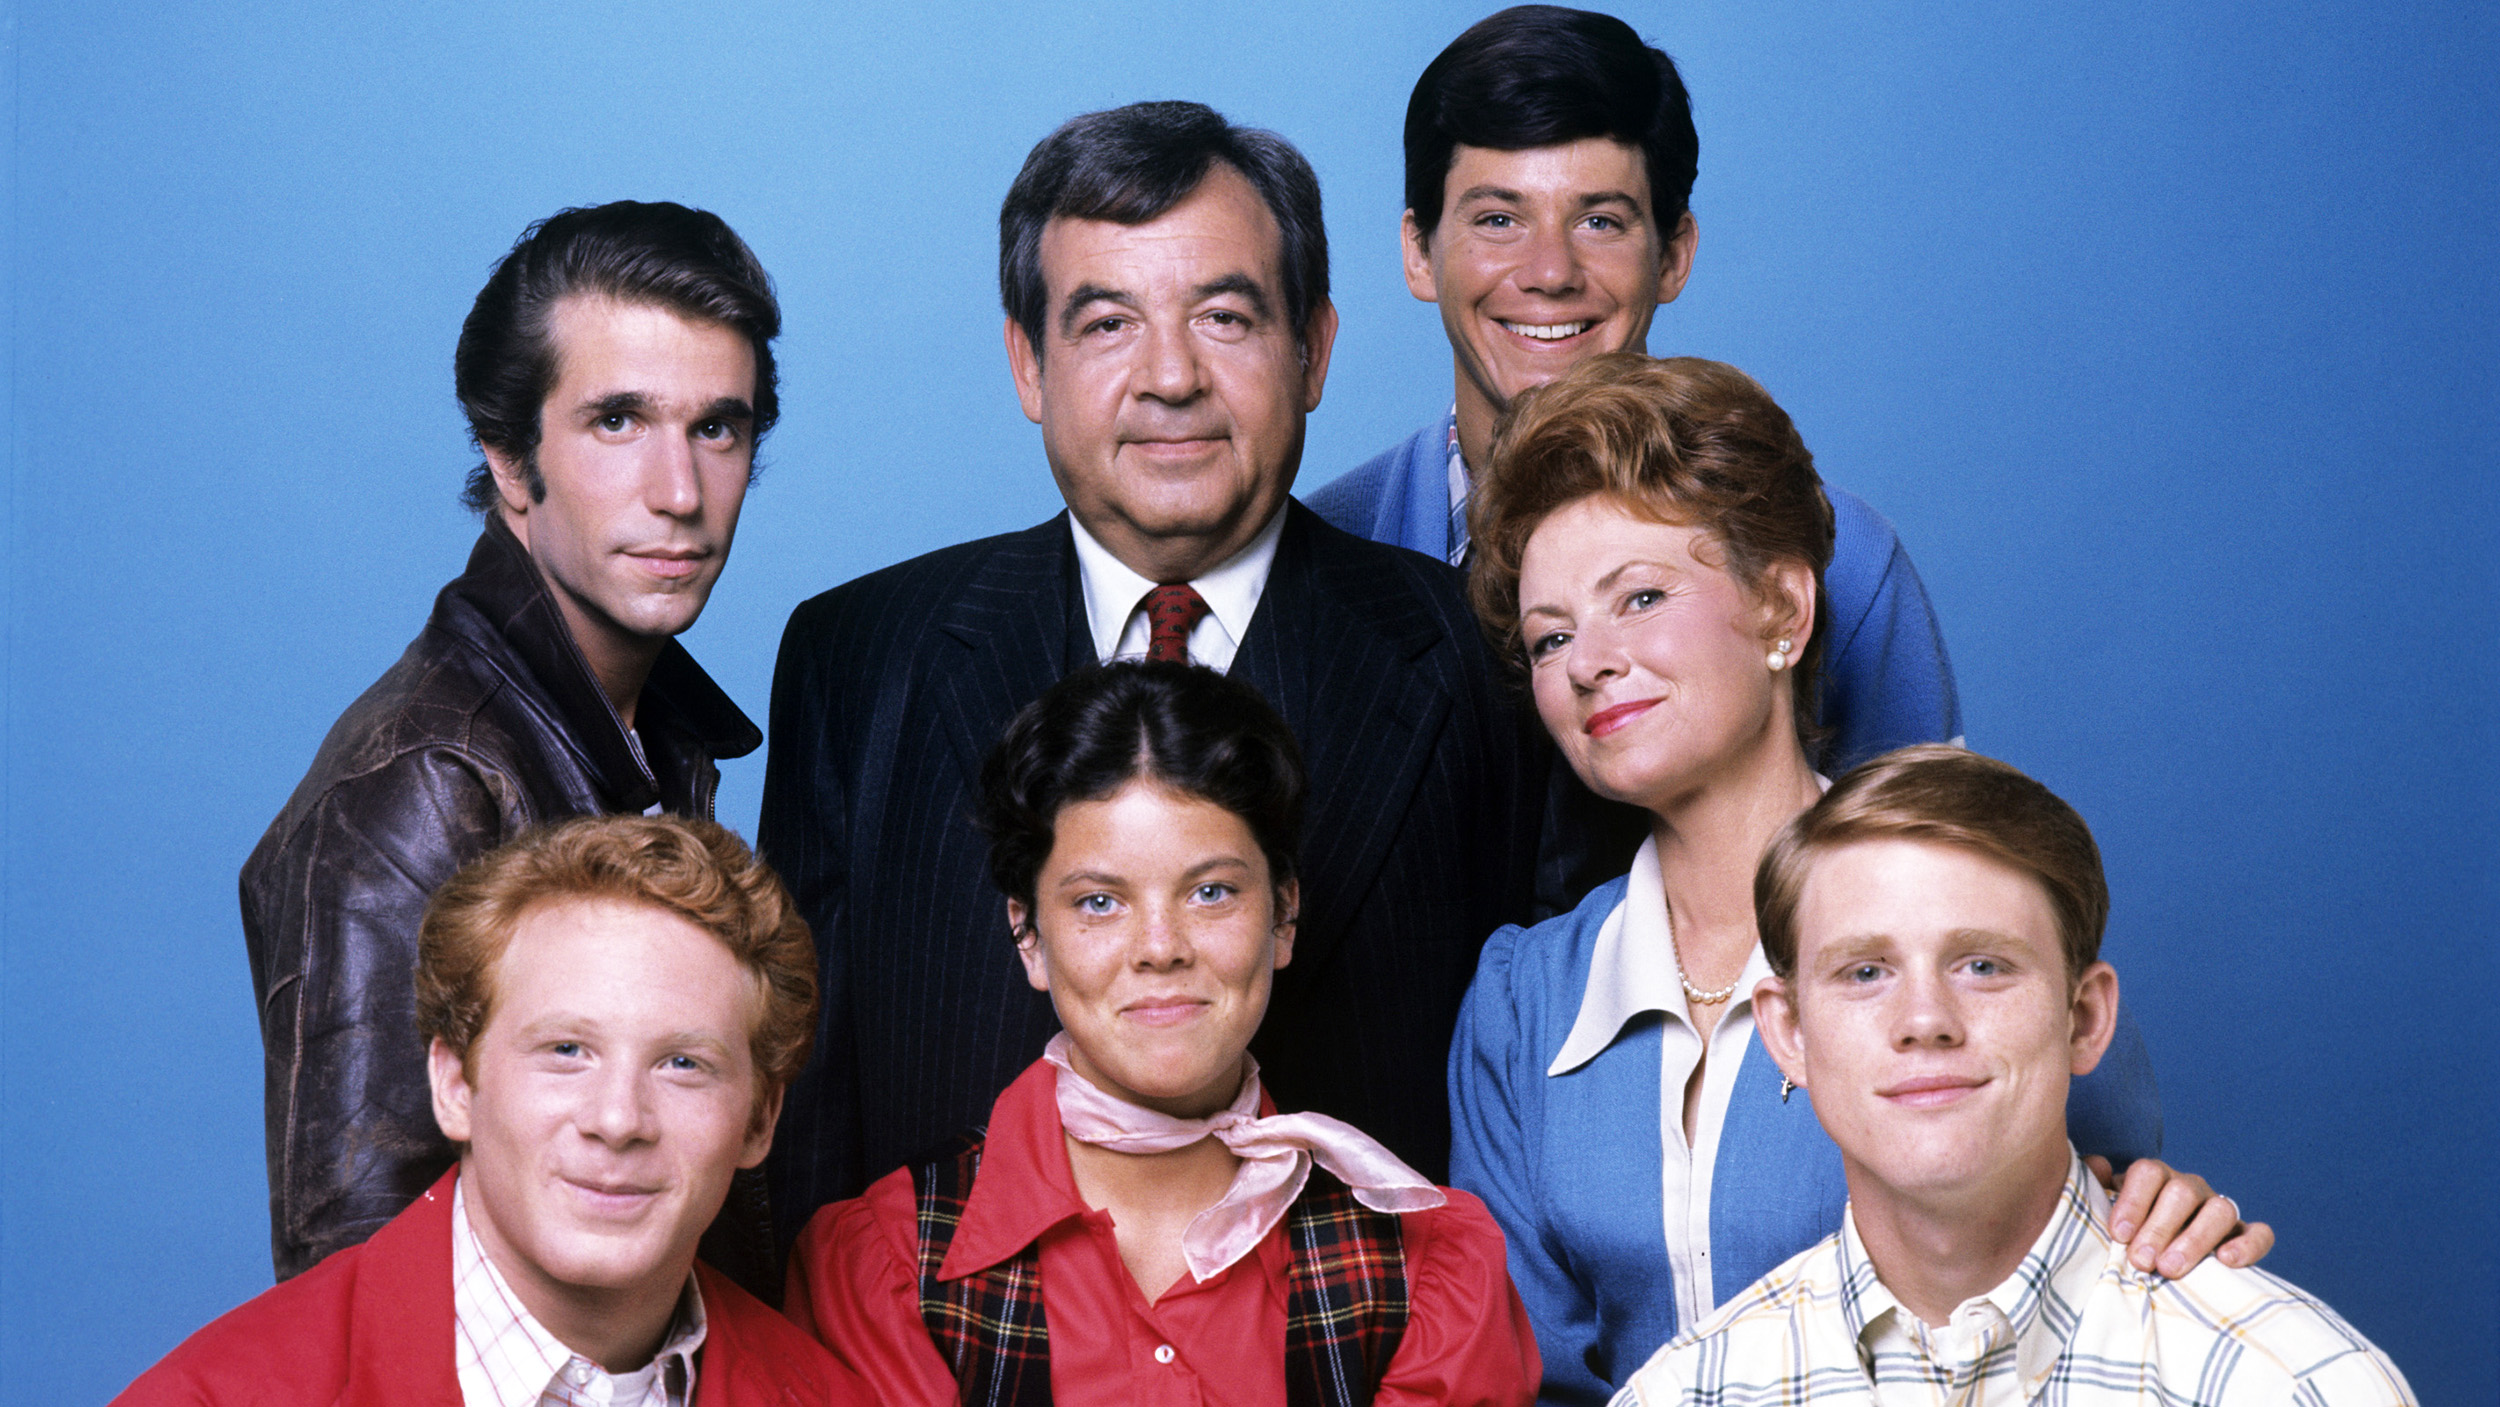 Days of our Lives 45 Years: A Celebration in